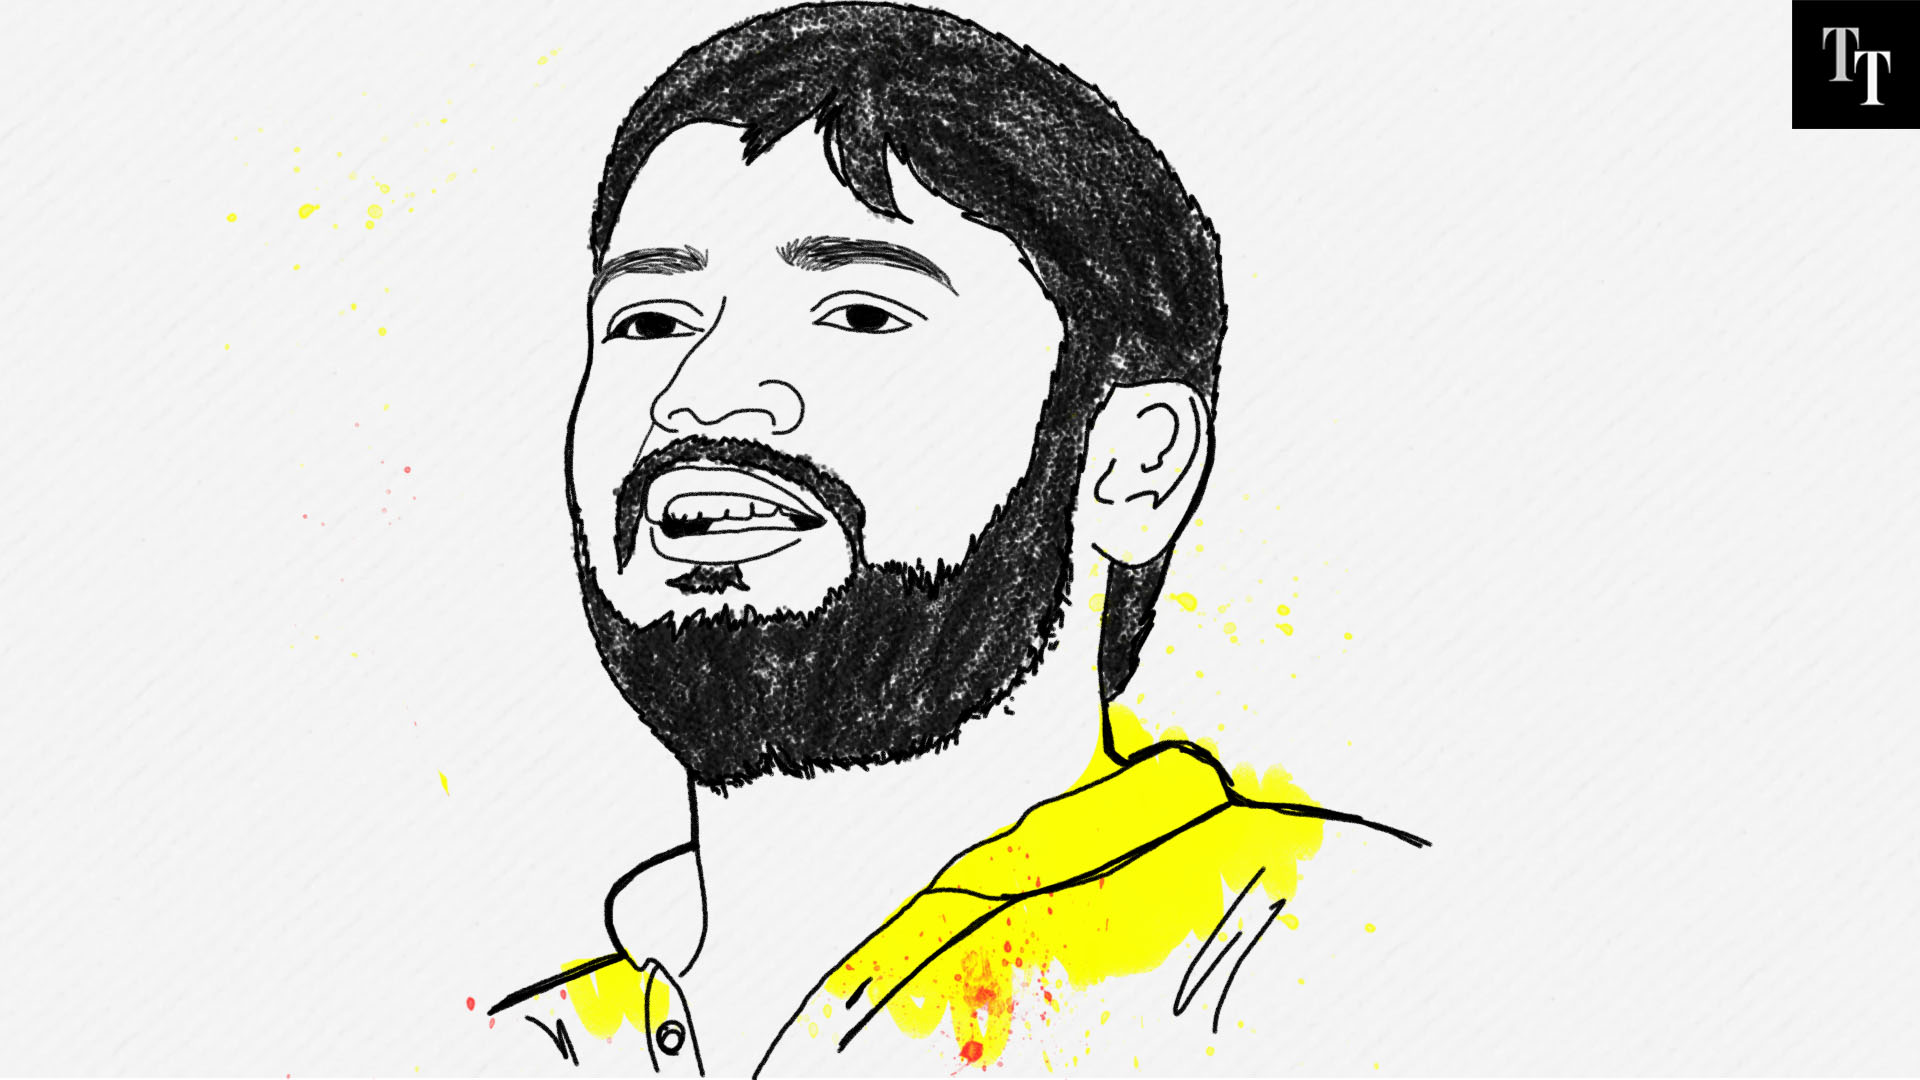 With student leader Kanhaiya Kumar's entry into the political ring, Begusarai became a fiercely contested constituency